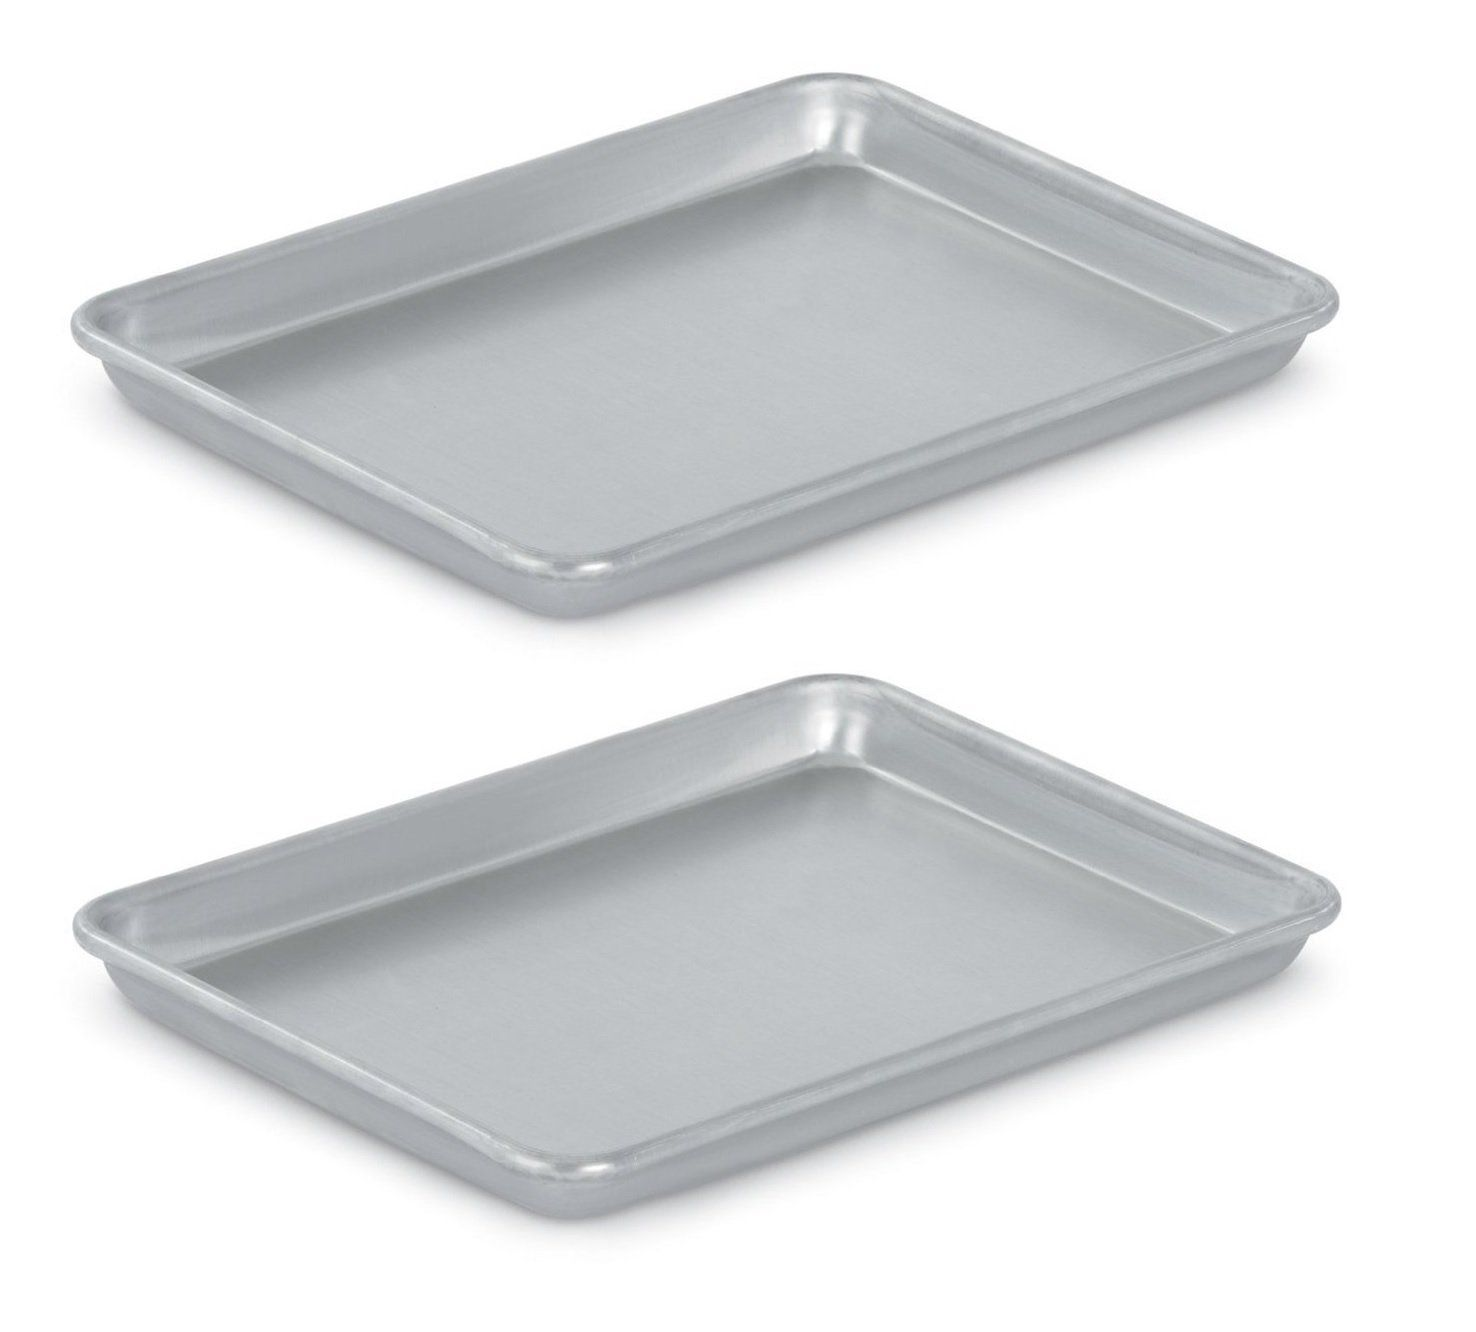 Vollrath 5220 Wear Ever Collection Quarter Size Sheet Pans Set Of 2 9 1 2 Inch X 13 Inch Aluminum Read Mor Baking Pans Sheet Pan Kids Baking Supplies